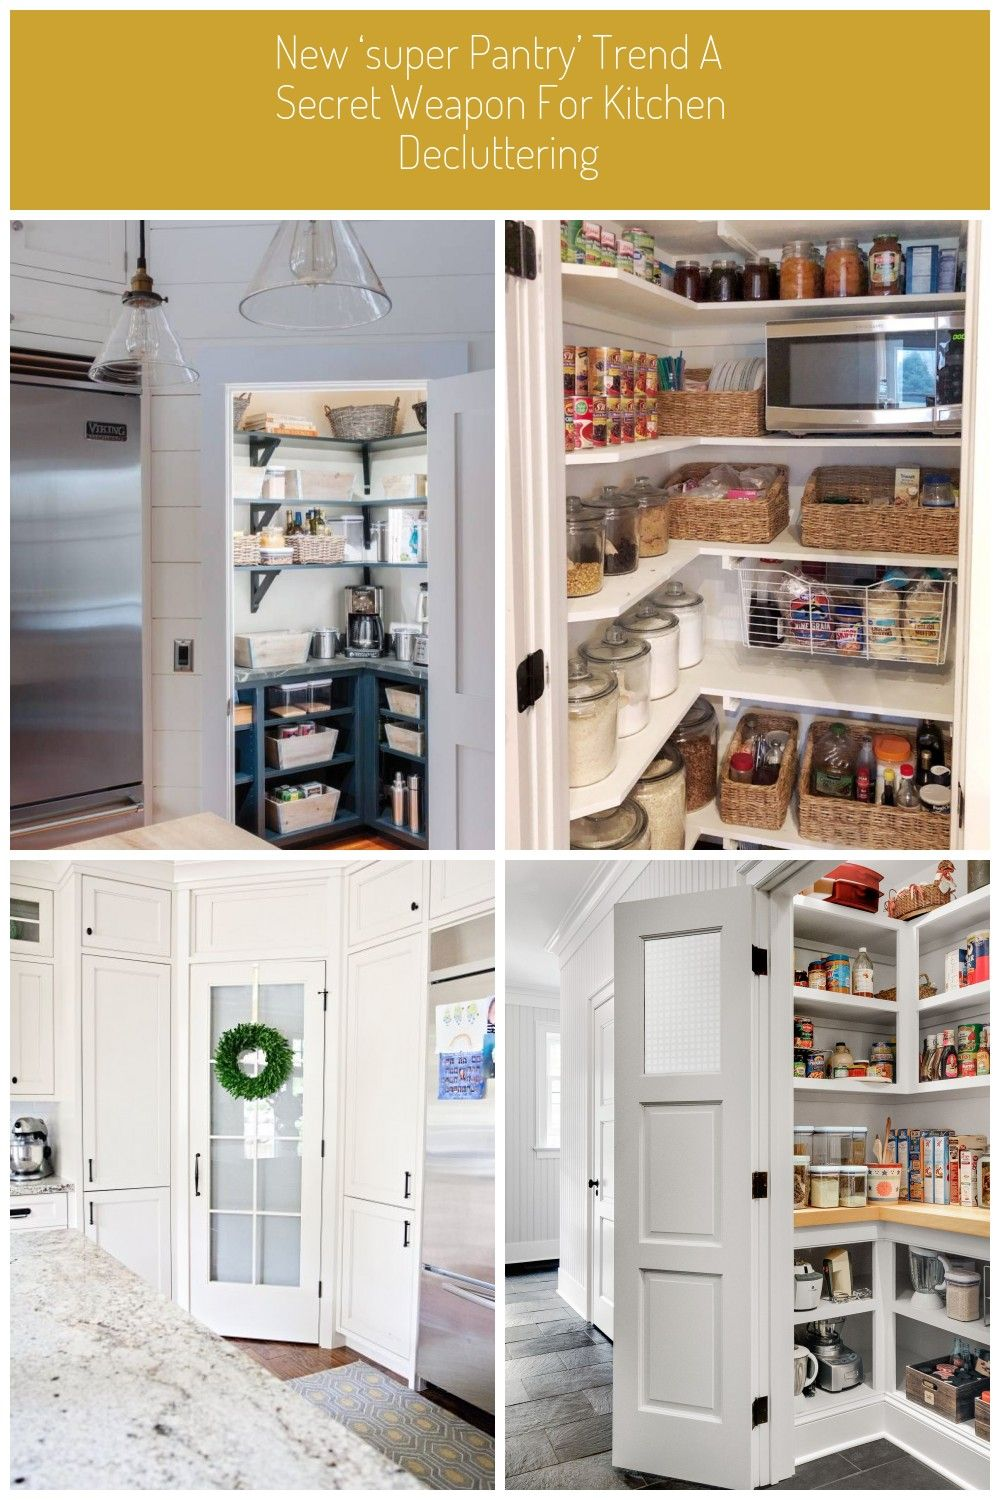 Quot Super Pantries Quot Are A Top Item On Home Wish Lists Industry Experts Say They Make It Easier To Keep Your Kitchen Looking Neat And Tidypantry Door With In 2020